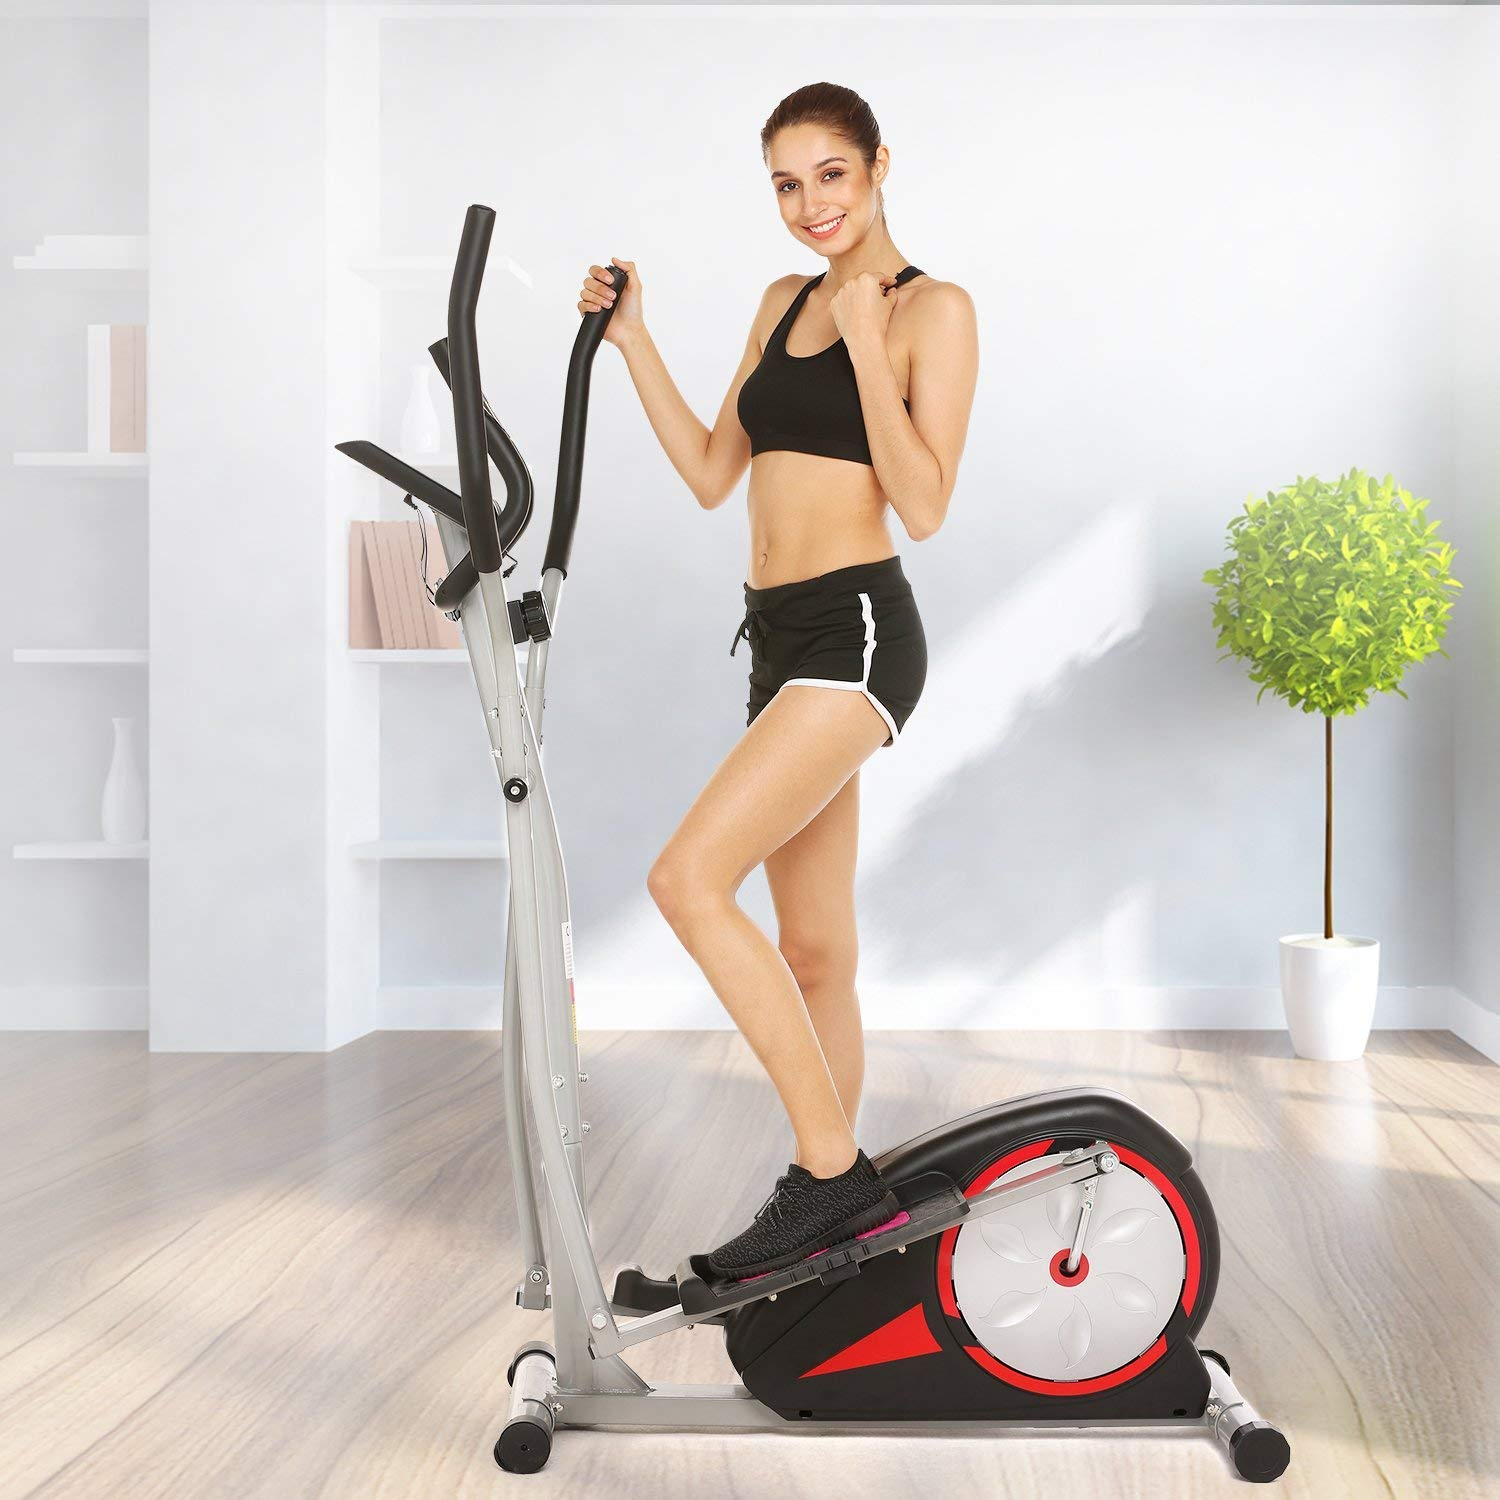 Kemanner Elliptical Machine Trainer for Home Gym Fitness Workout,Smooth Quiet Elliptical Trainer Magnetic Control with LCD Monitor and Pulse Rate Grips(Black) by Kemanner (Image #1)